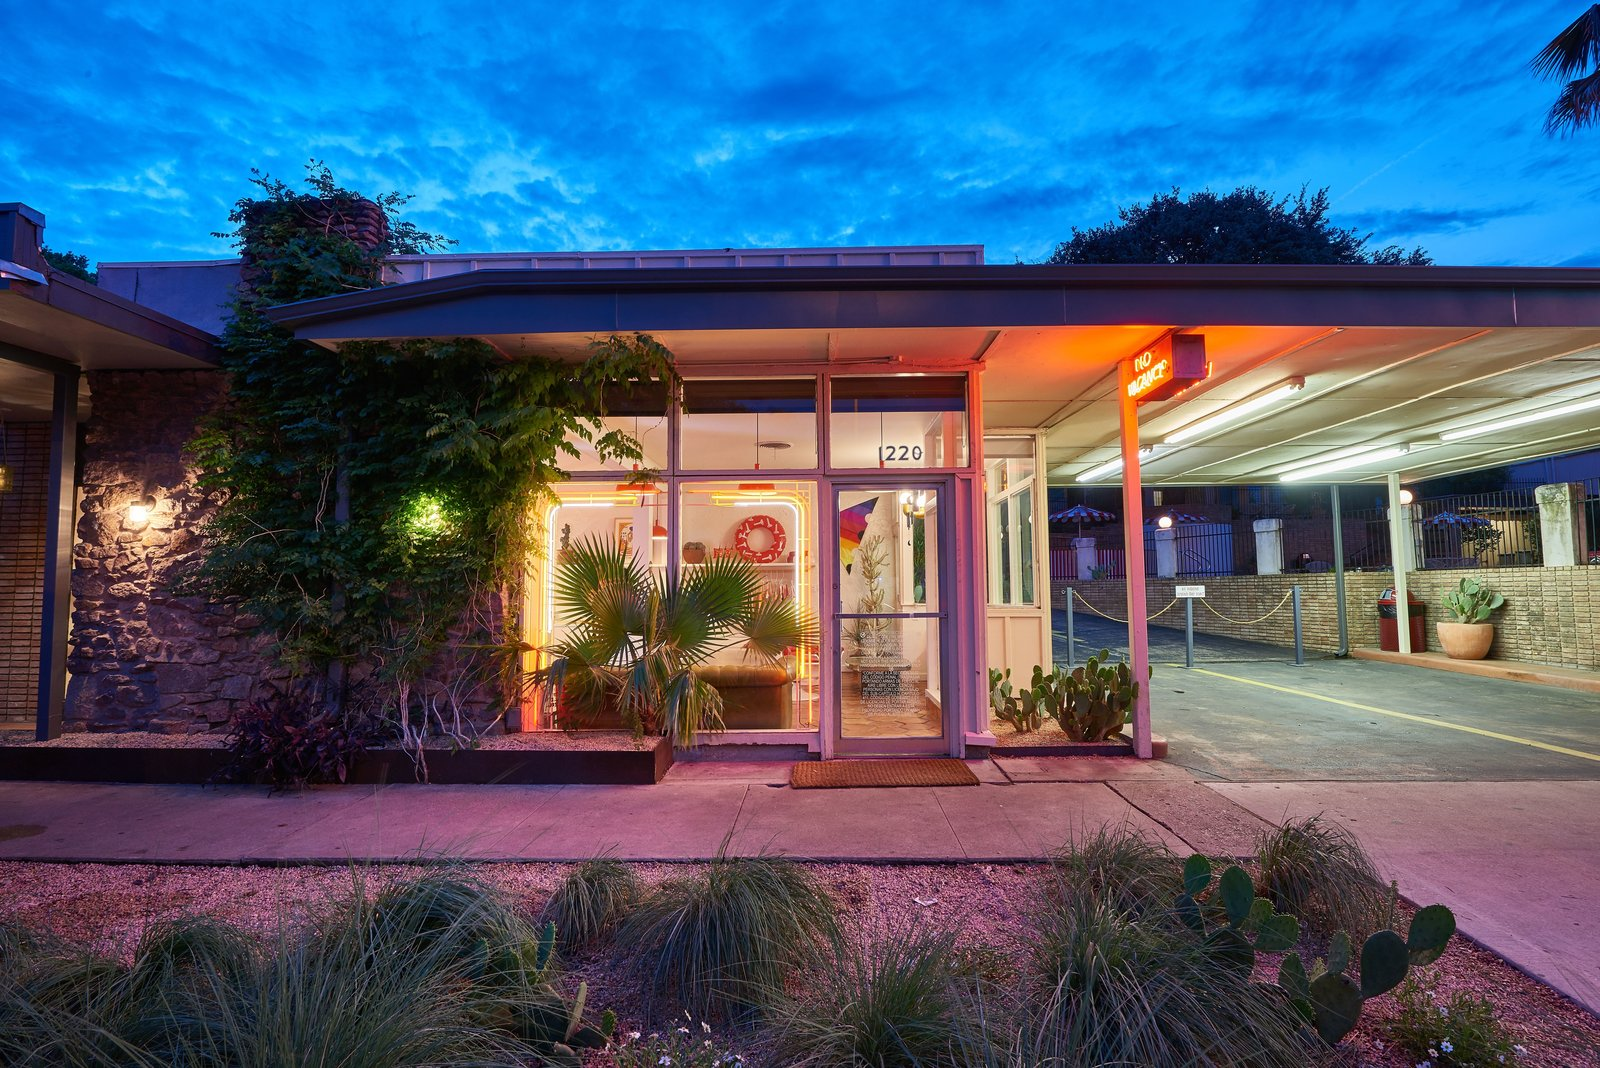 Exterior  Photo 13 of 13 in The Rejuvenated Austin Motel Welcomes Guests With Upbeat, Midcentury-Modern Vibes